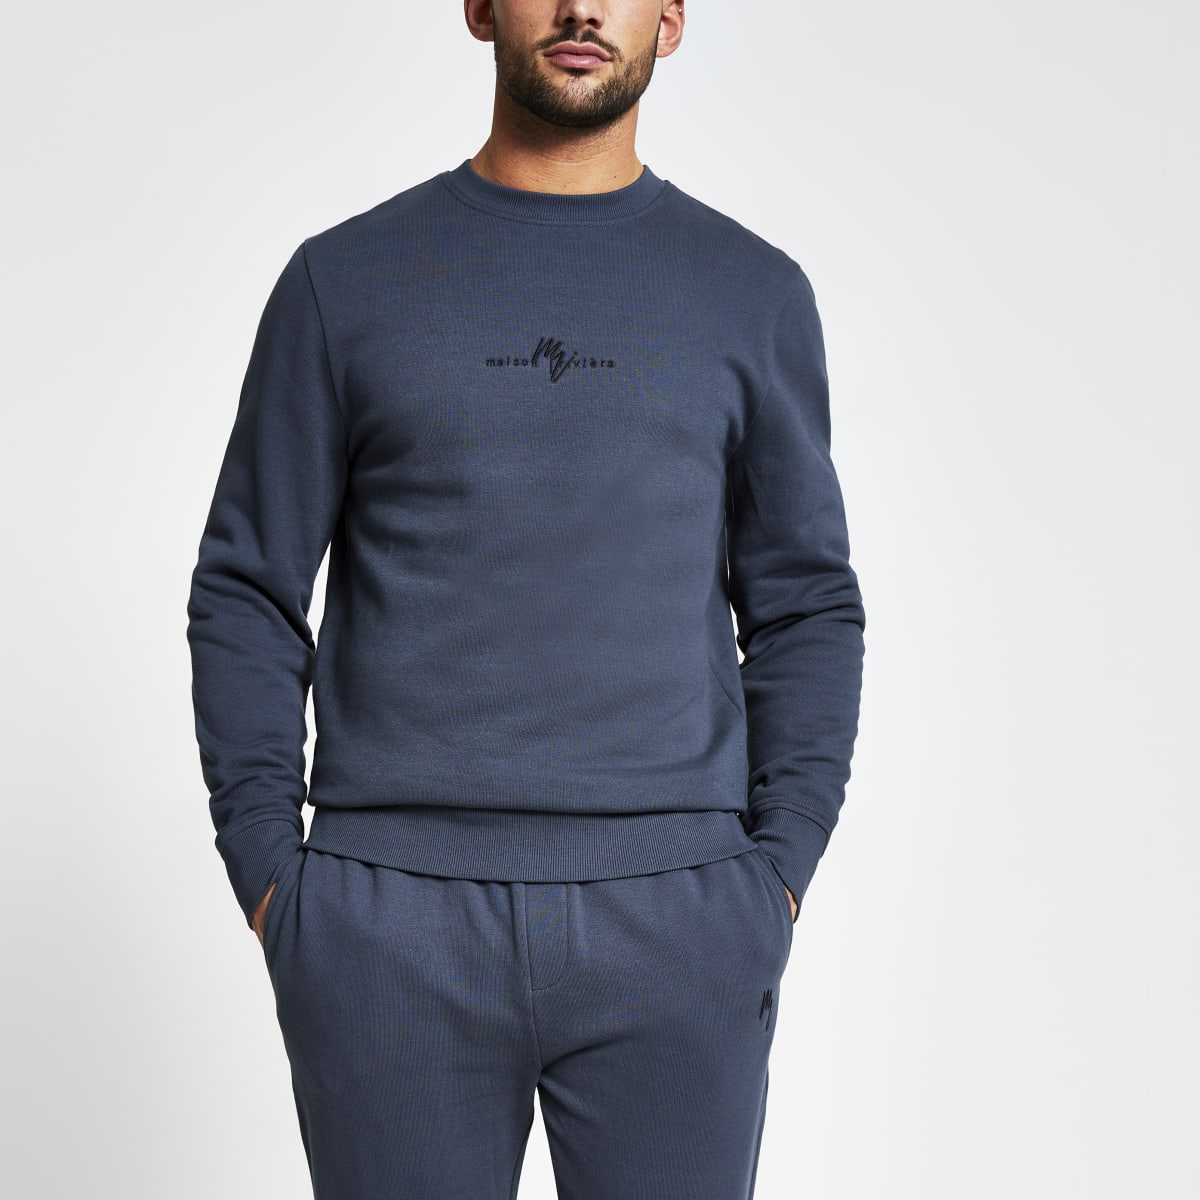 Maison Riviera dark green slim fit sweatshirt